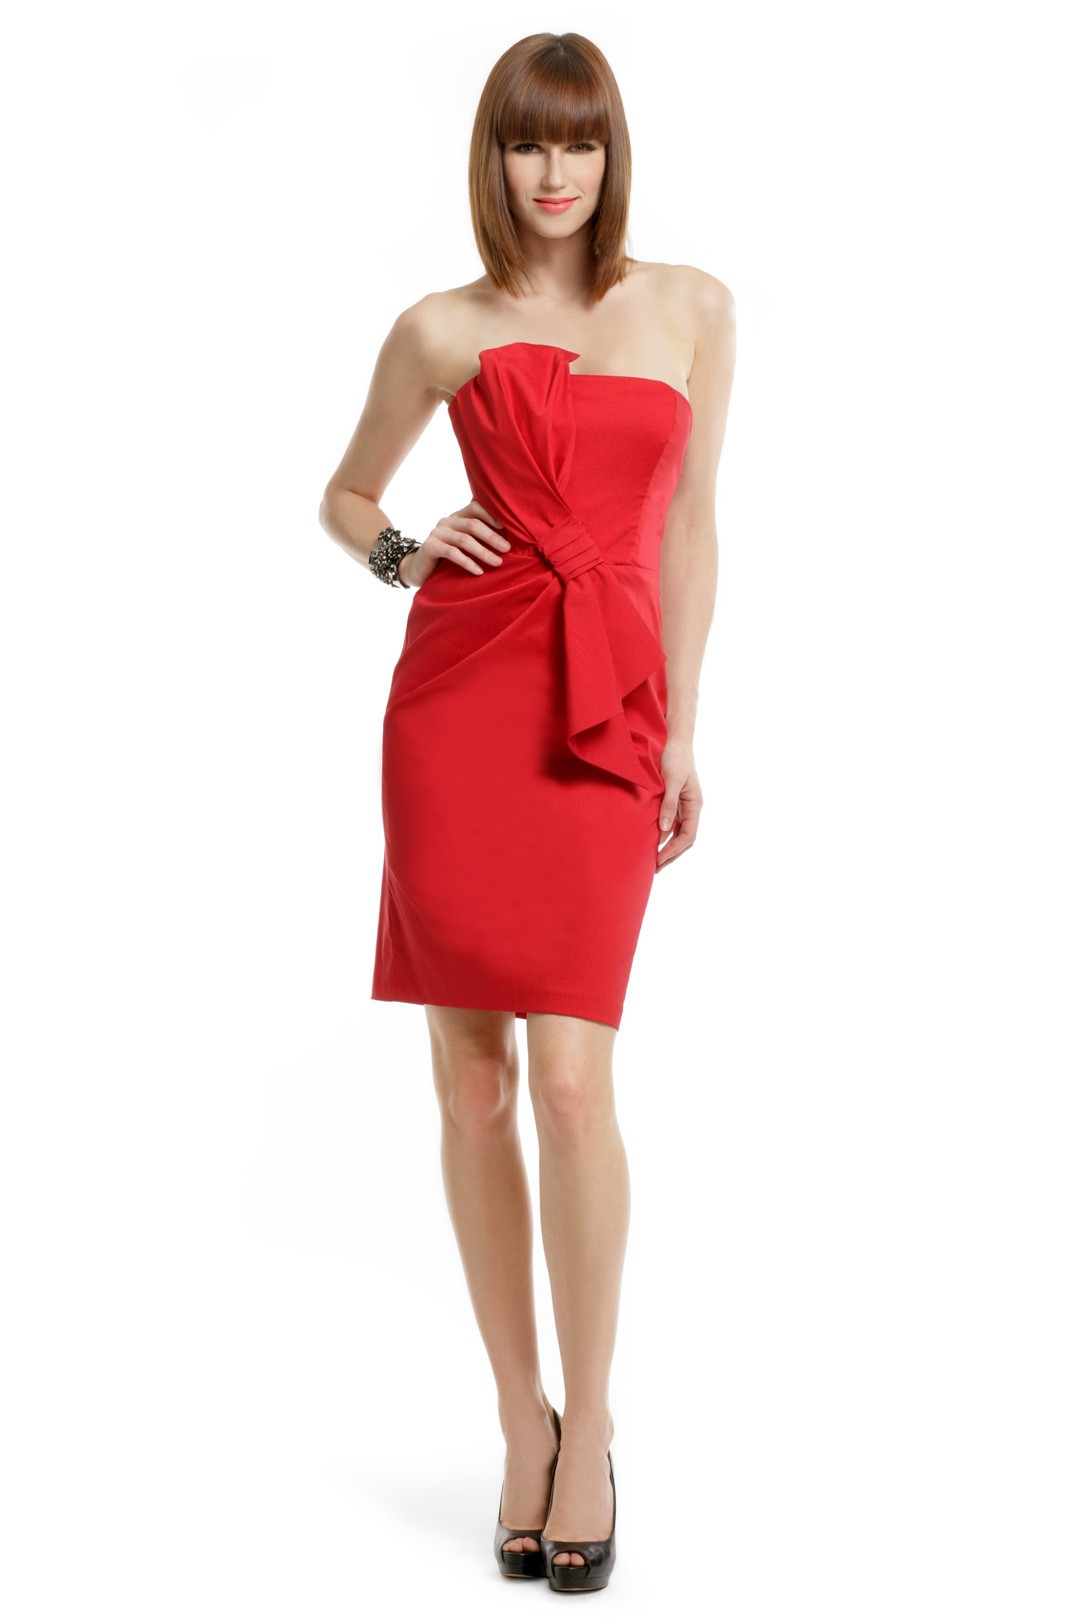 Lady In Red Dress